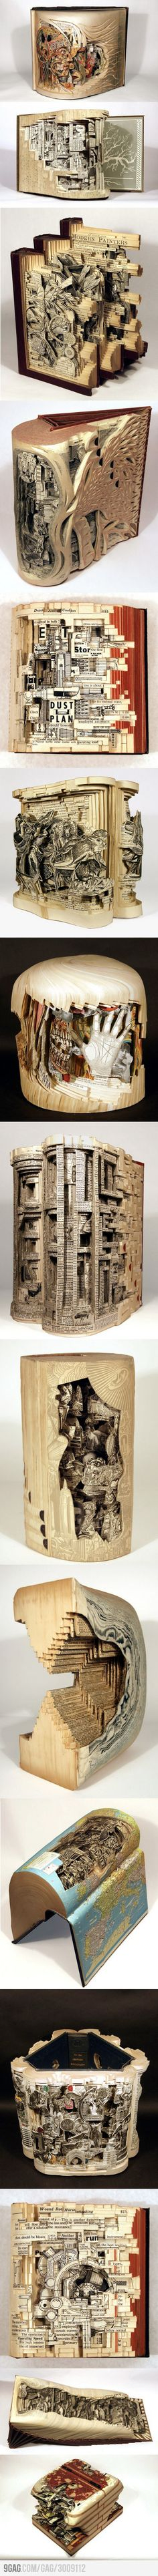 Awesome books are awesome. Book sculptures